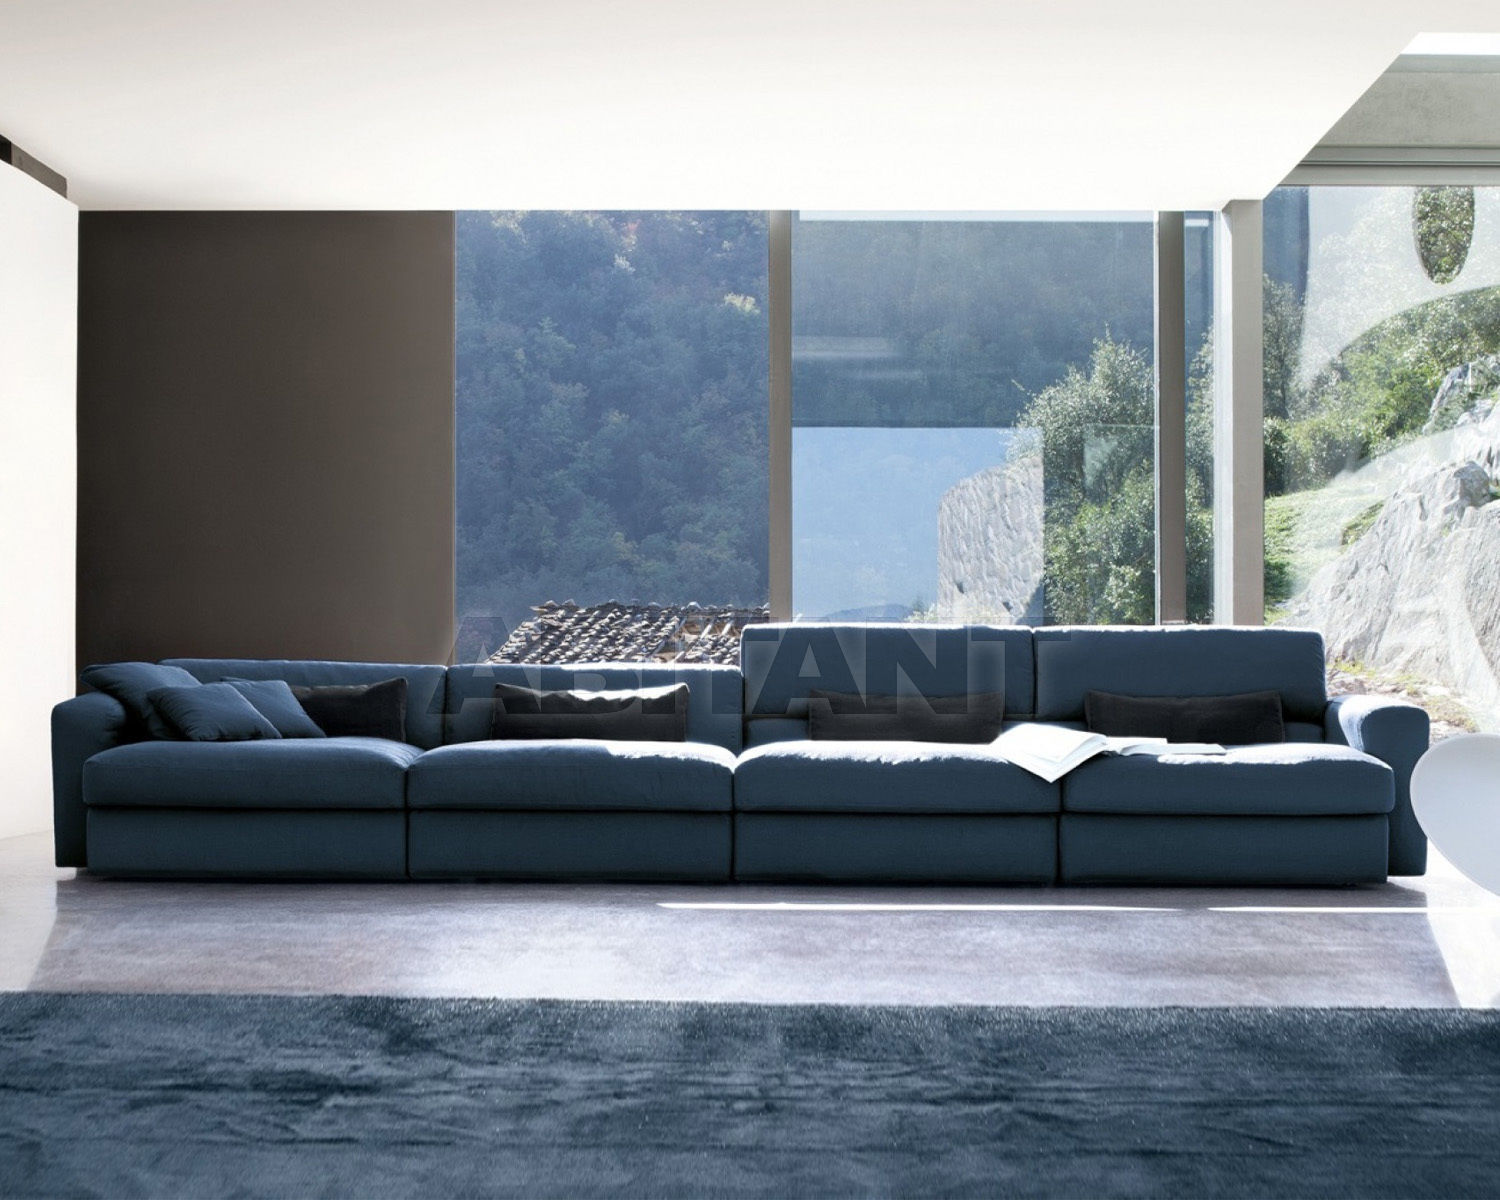 Sofa Next dark blue Doimo salotti 1NXT31 * 2 + 1NXT81 + 1NXT82 ...